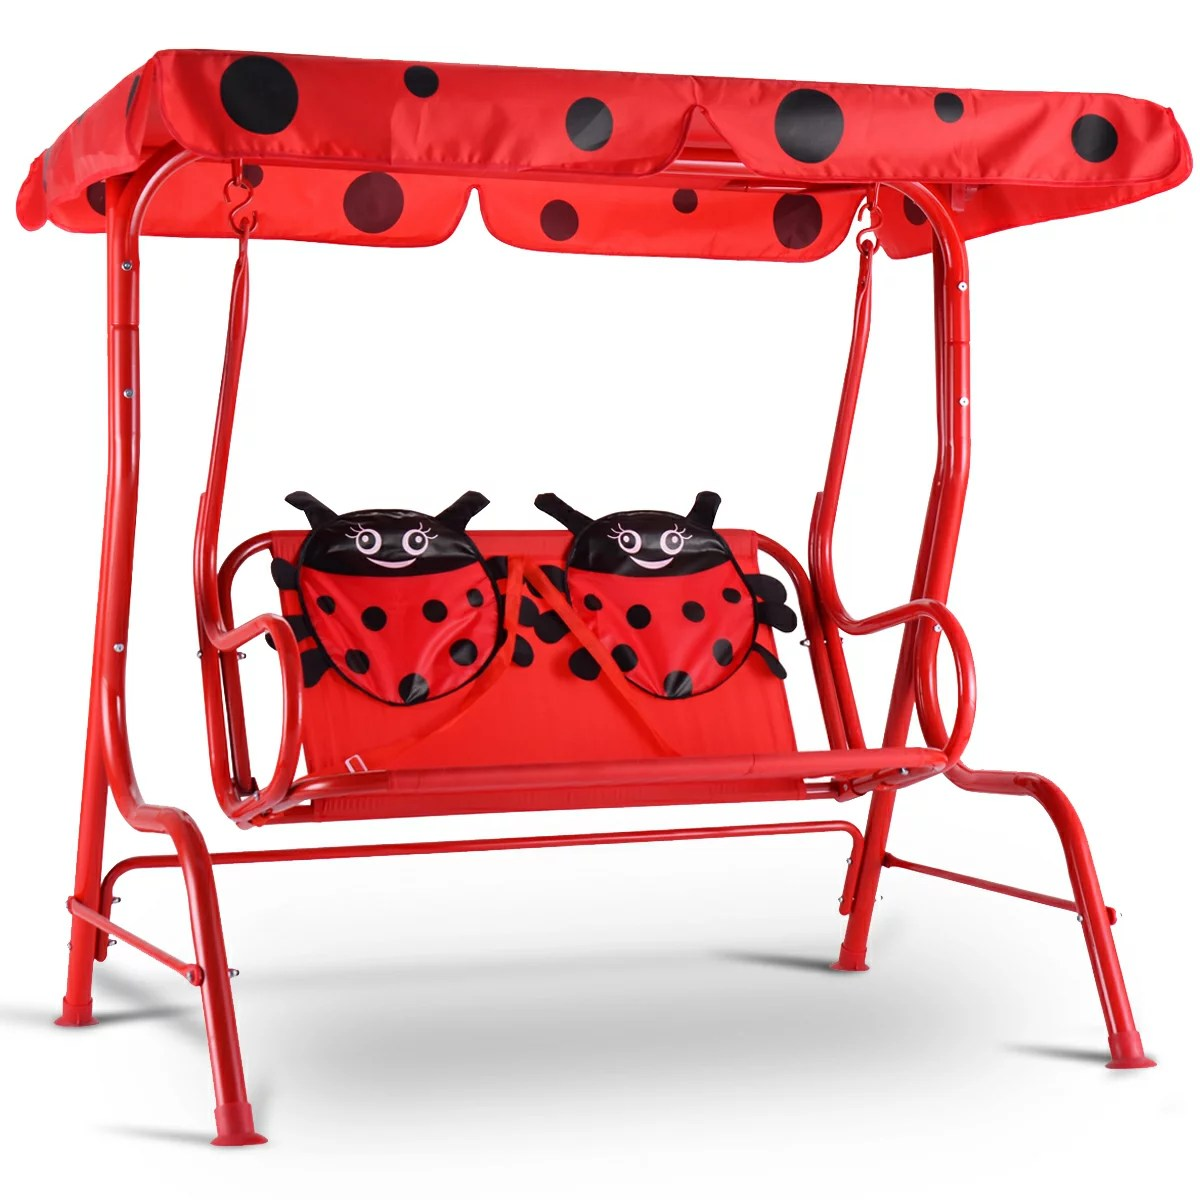 kids chair with canopy wing slip covers costway patio swing children porch bench 2 person yard furniture red 0